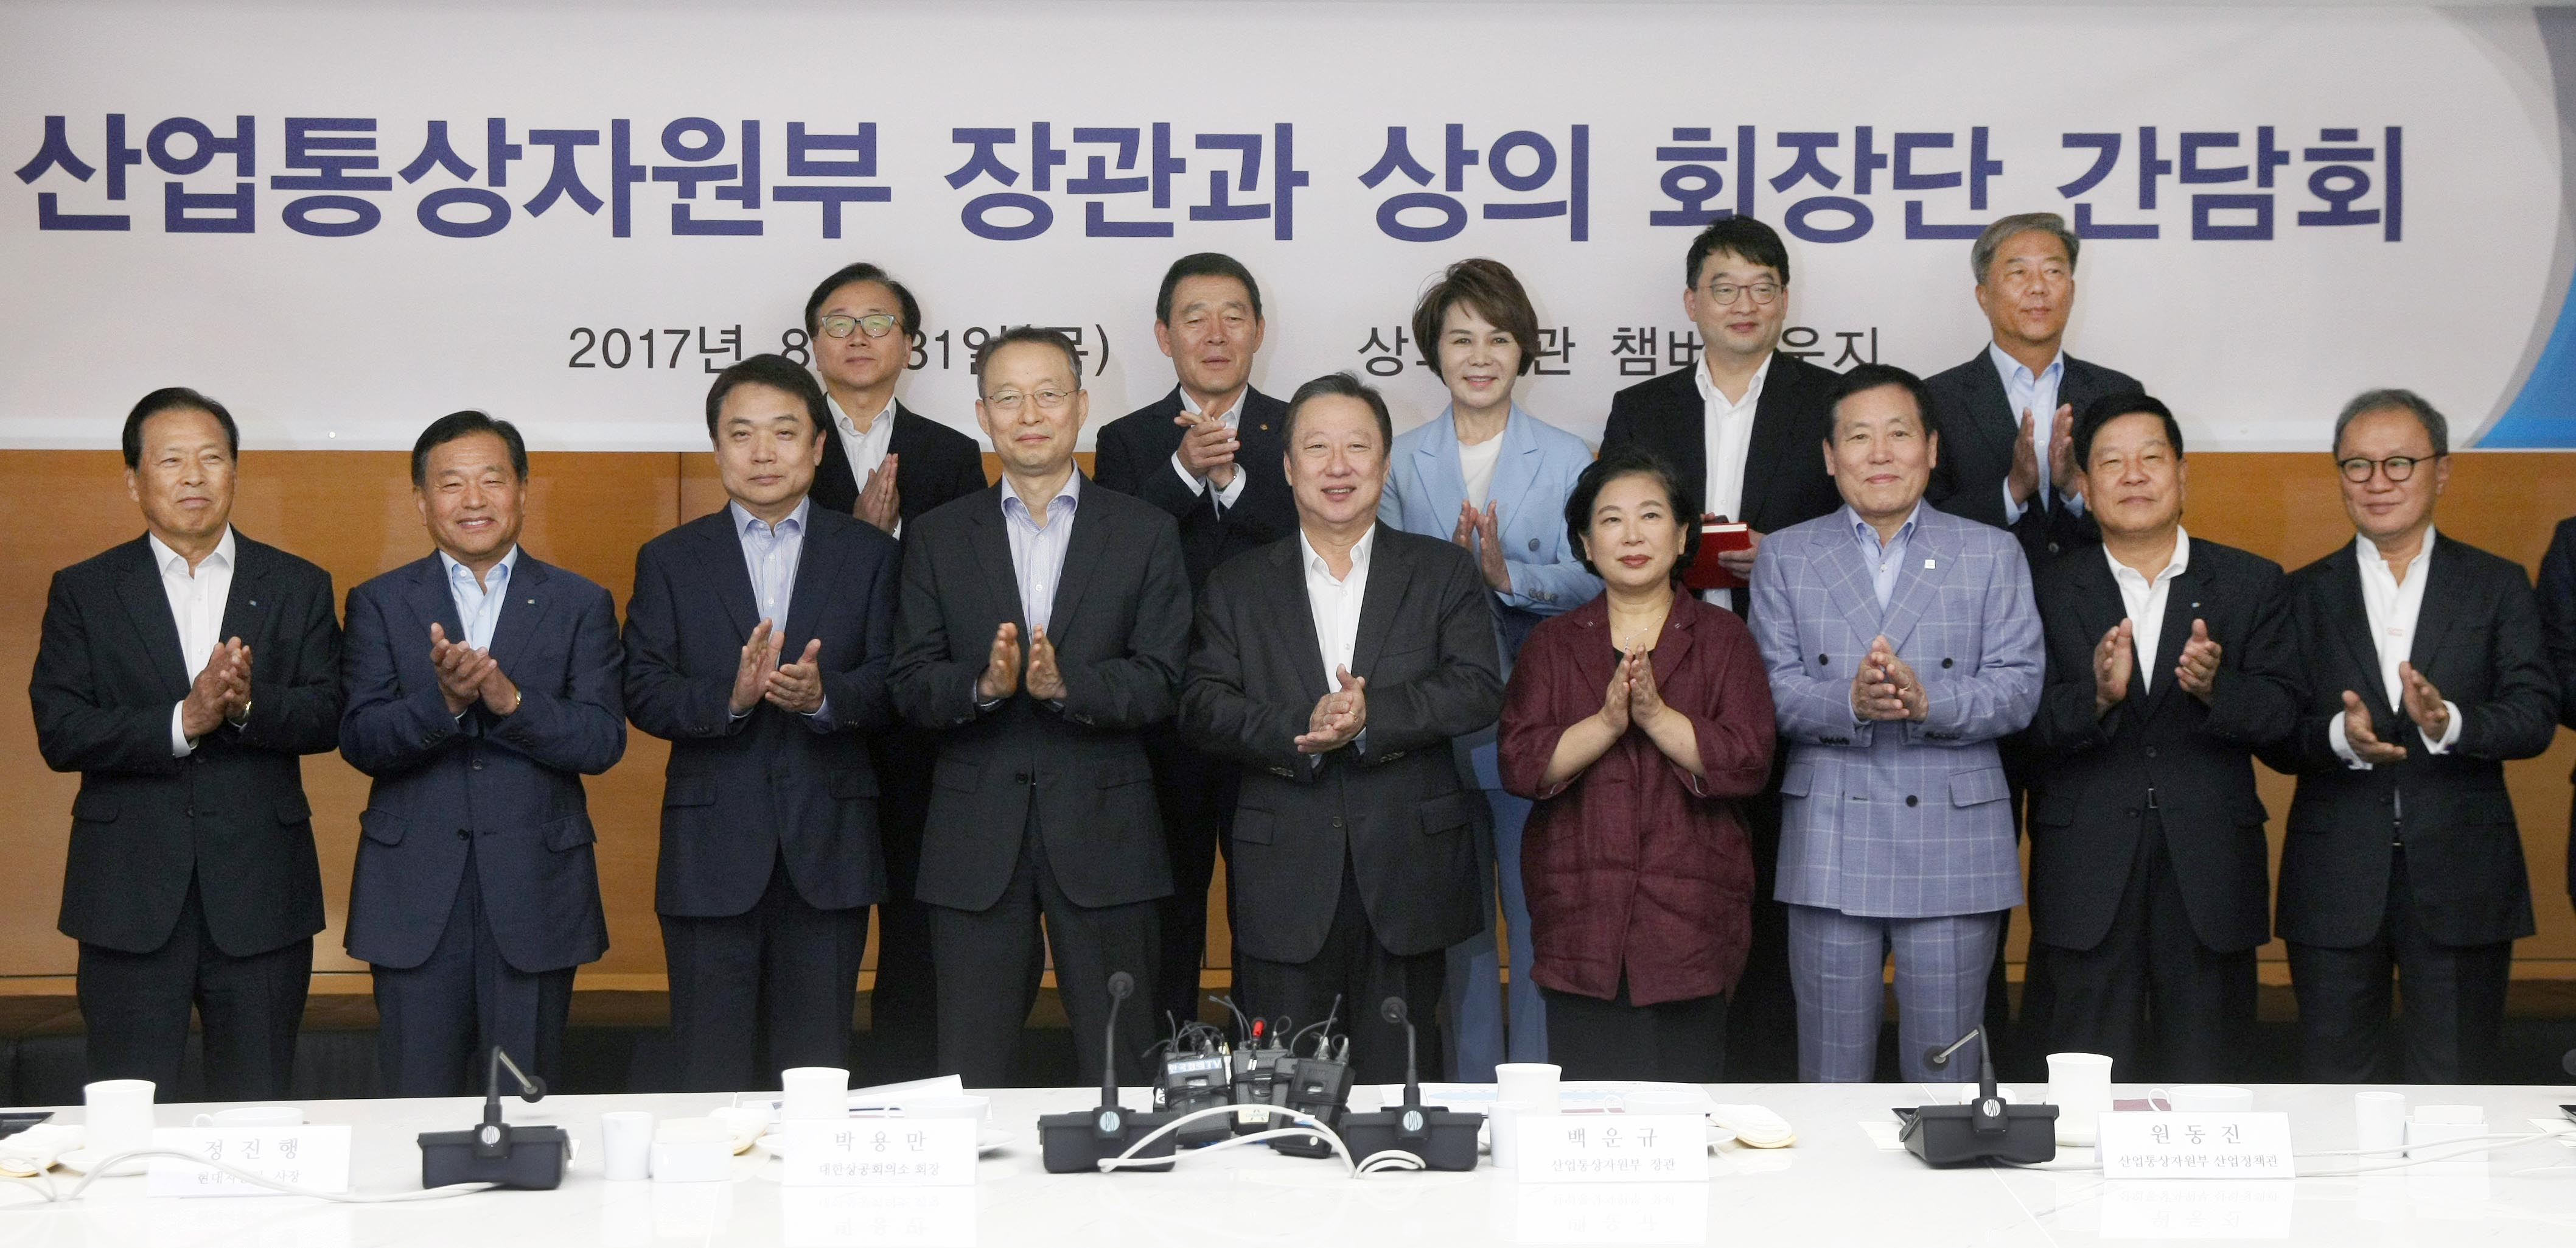 Minister Paik meets business leaders of KCCI